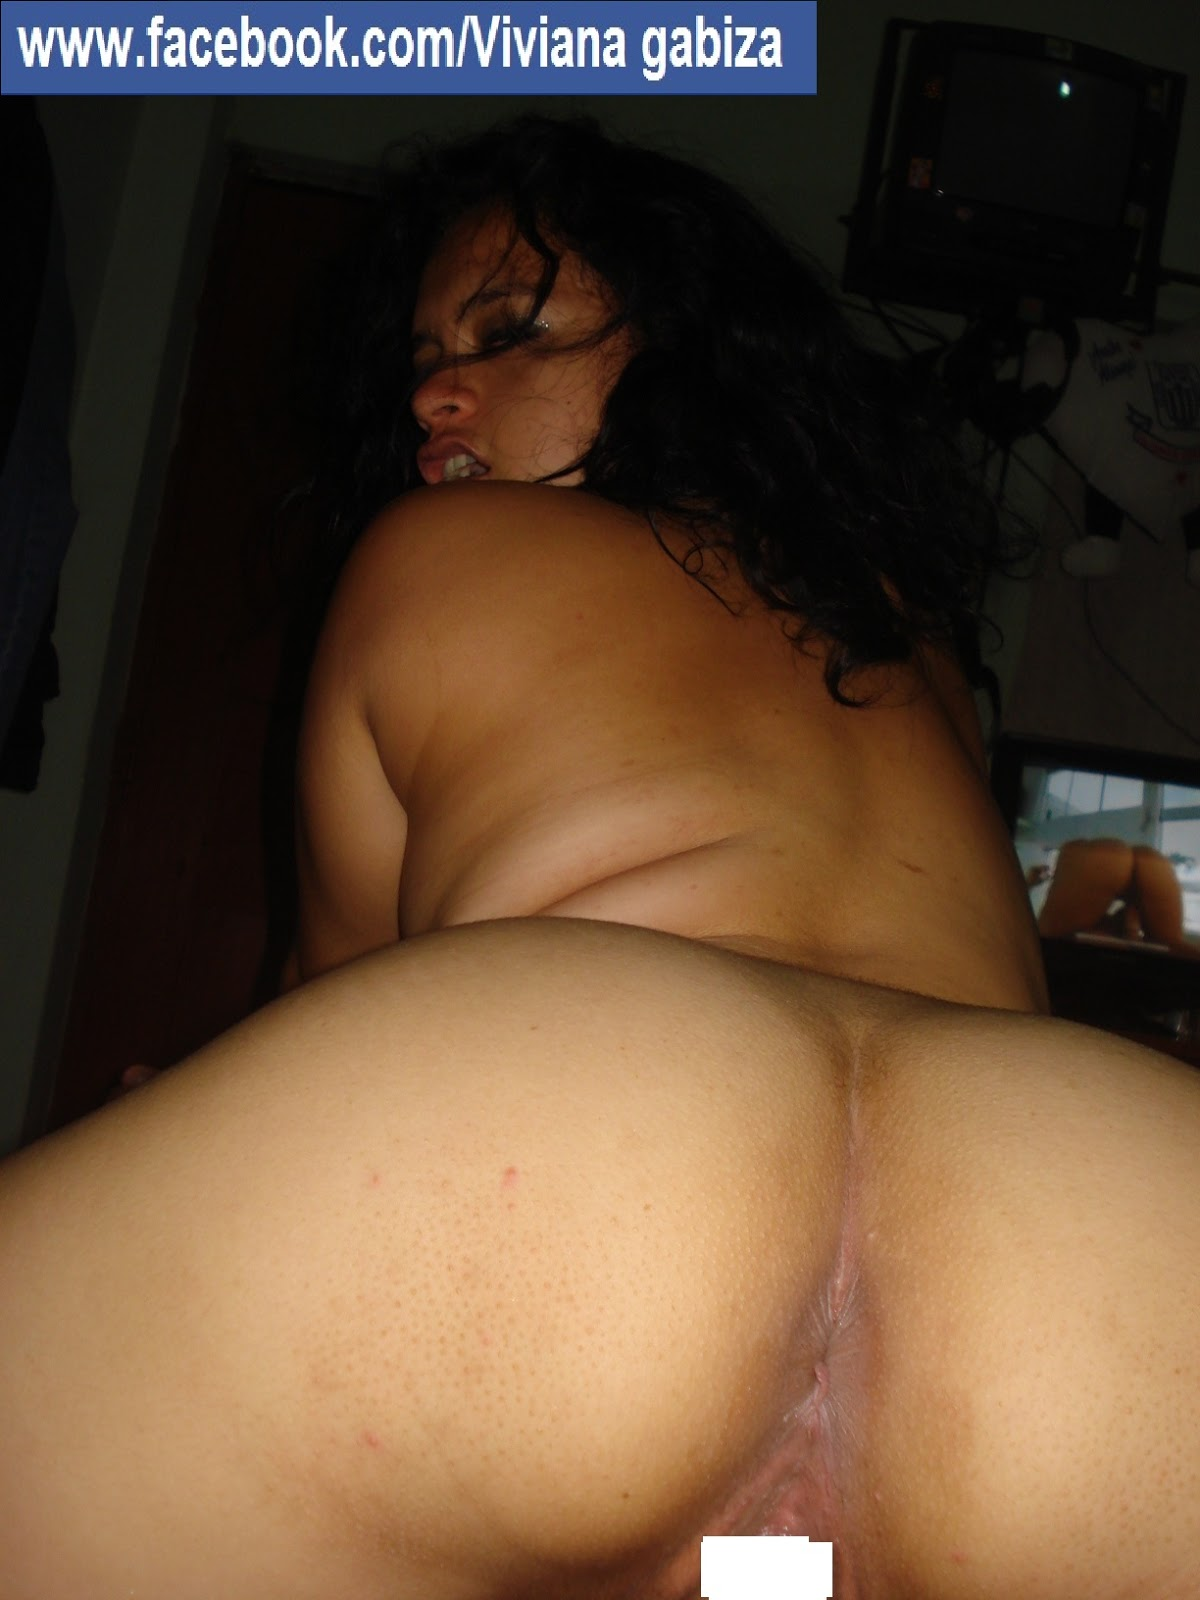 Are Peru sexo join. happens